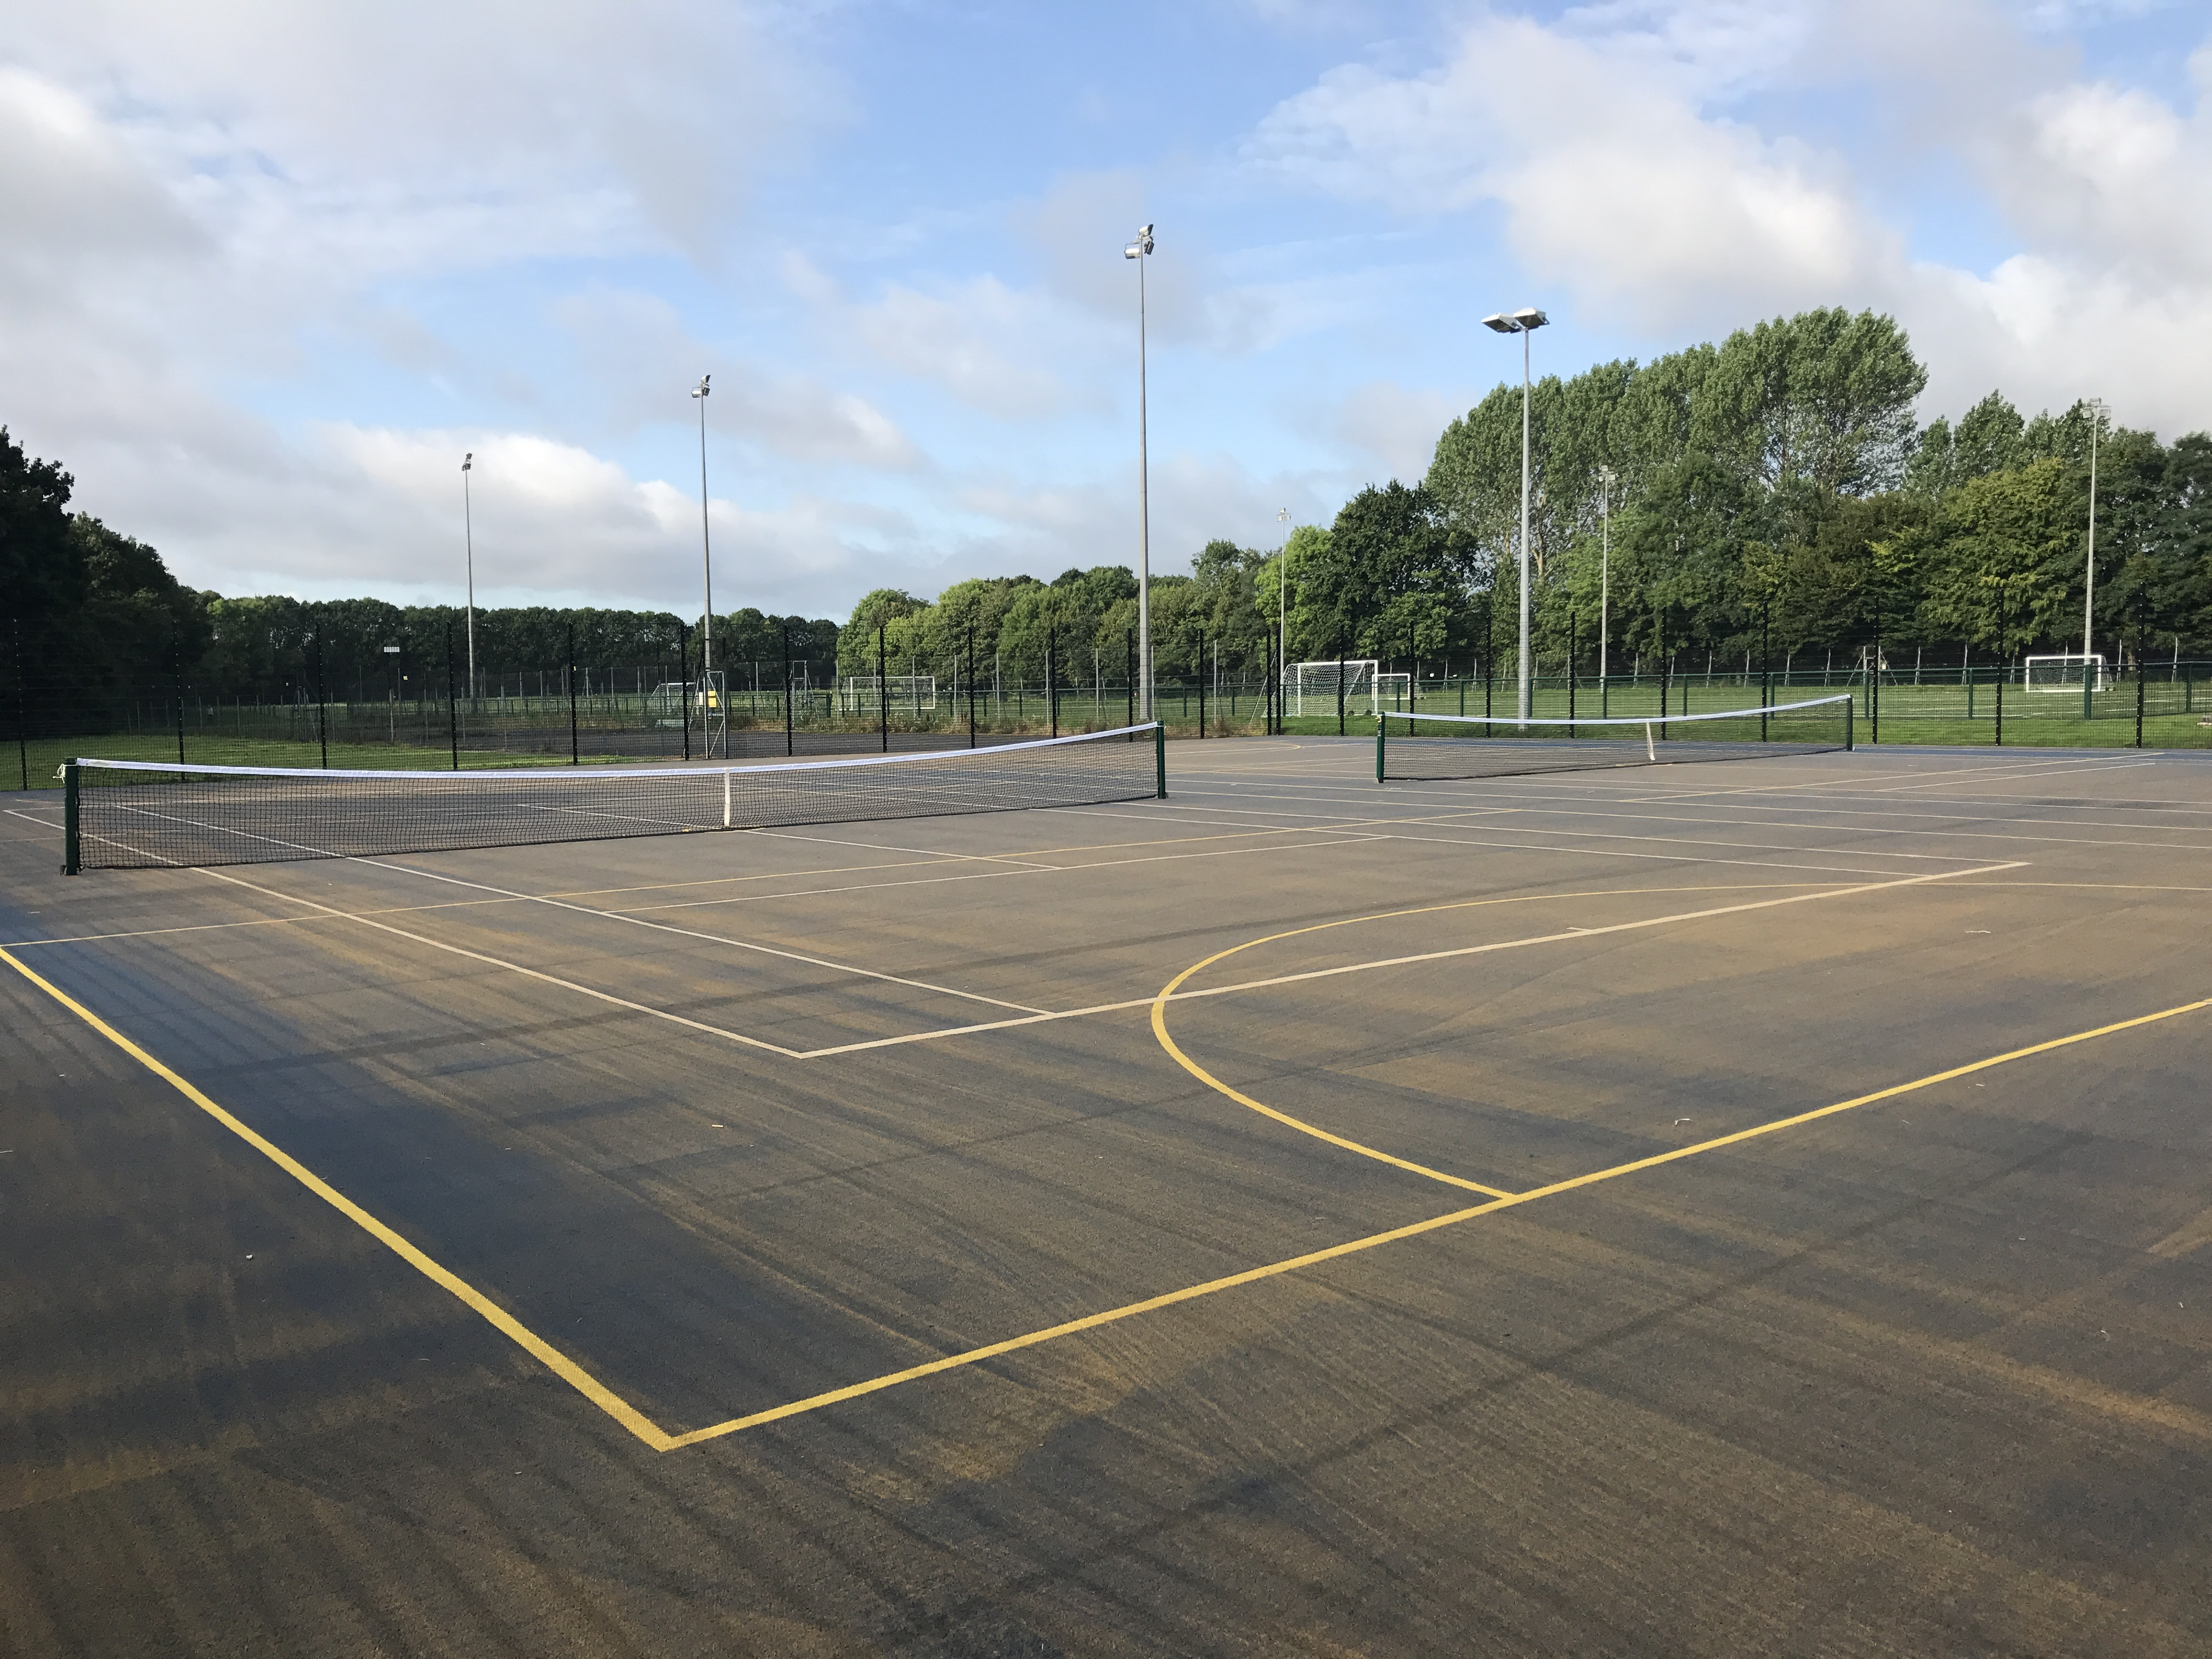 Needle punched carpets are a great solution for artificial tennis courts in the UK